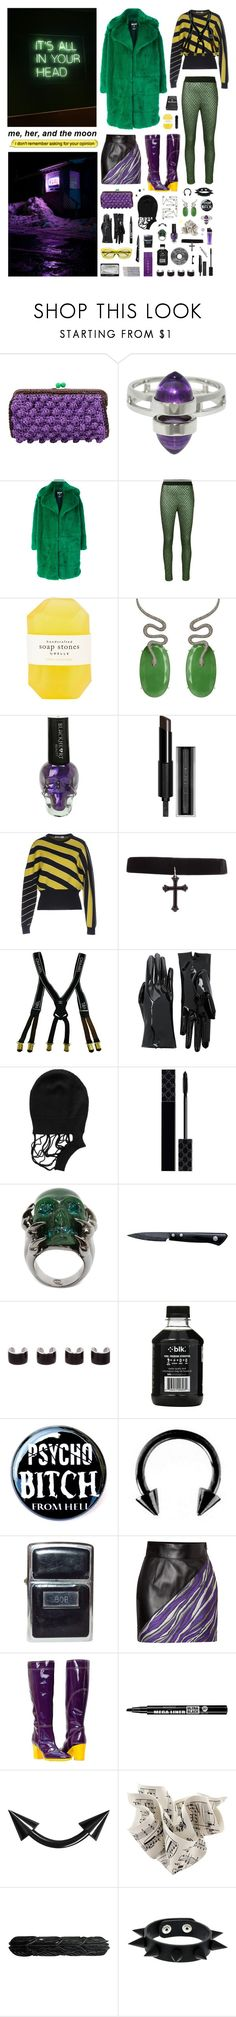 """We can't be pretty with your souls"" by nothingisnormal ❤ liked on Polyvore featuring Missoni, MSGM, Dolce&Gabbana, Prada, Pelle, Christina Debs, Hot Topic, Givenchy, Jil Sander and Chanel"